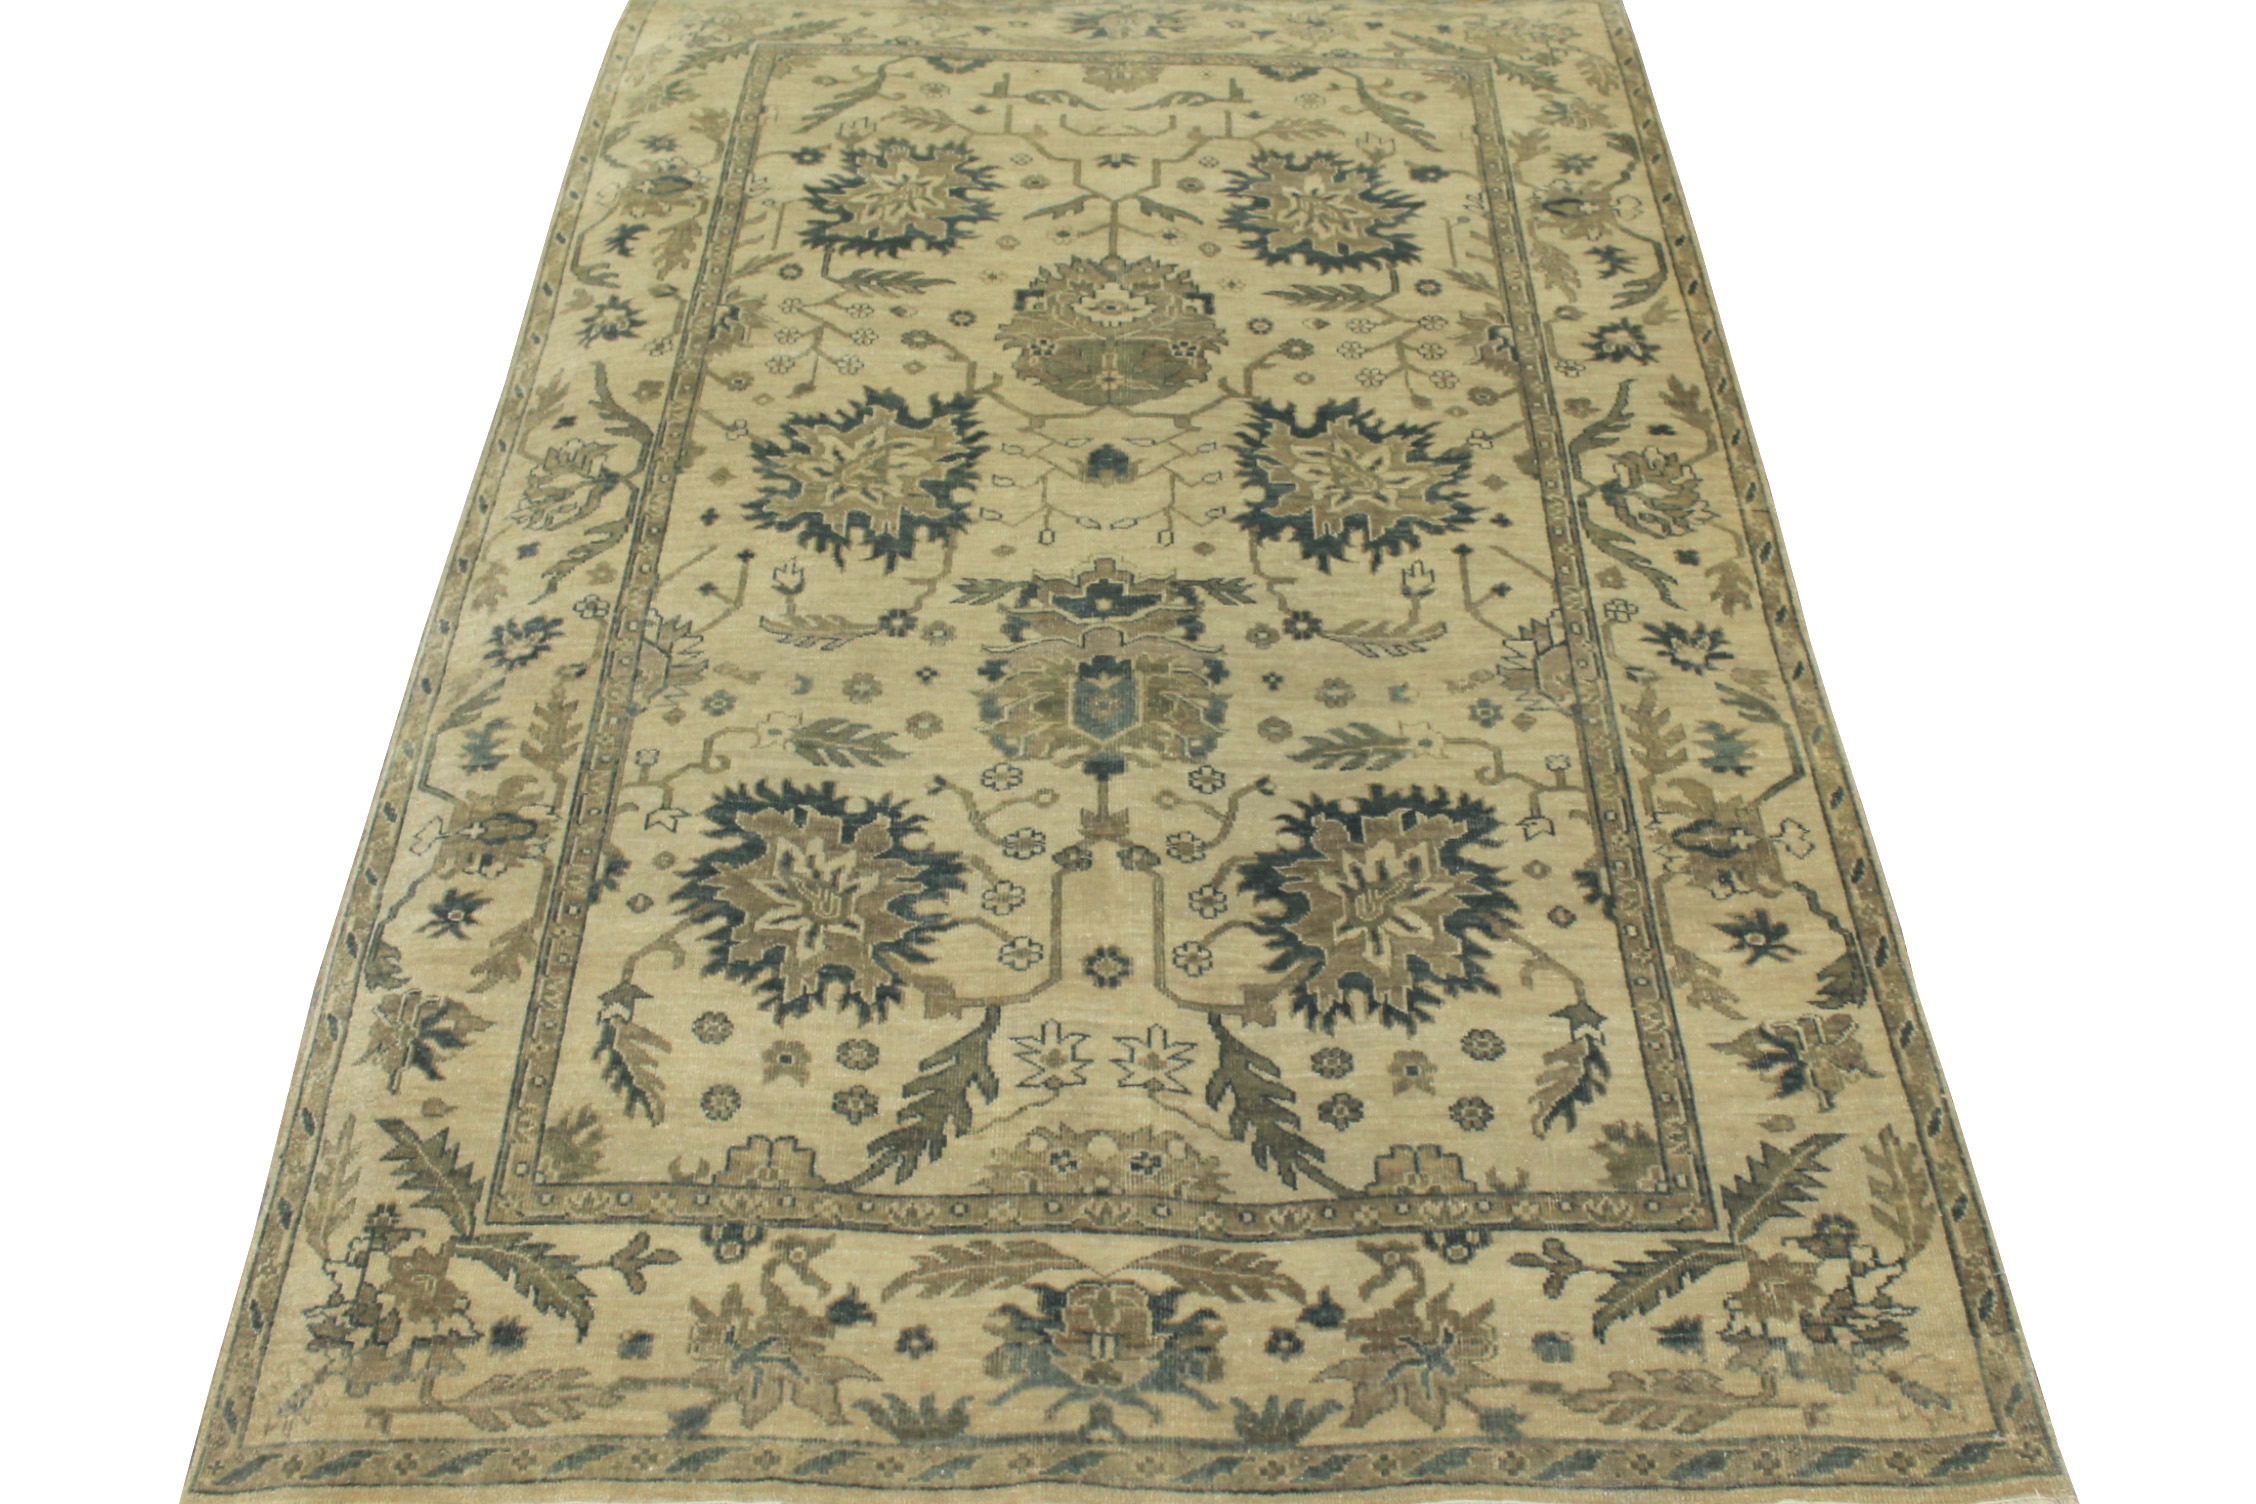 6x9 Oushak Hand Knotted Wool Area Rug - MR16223